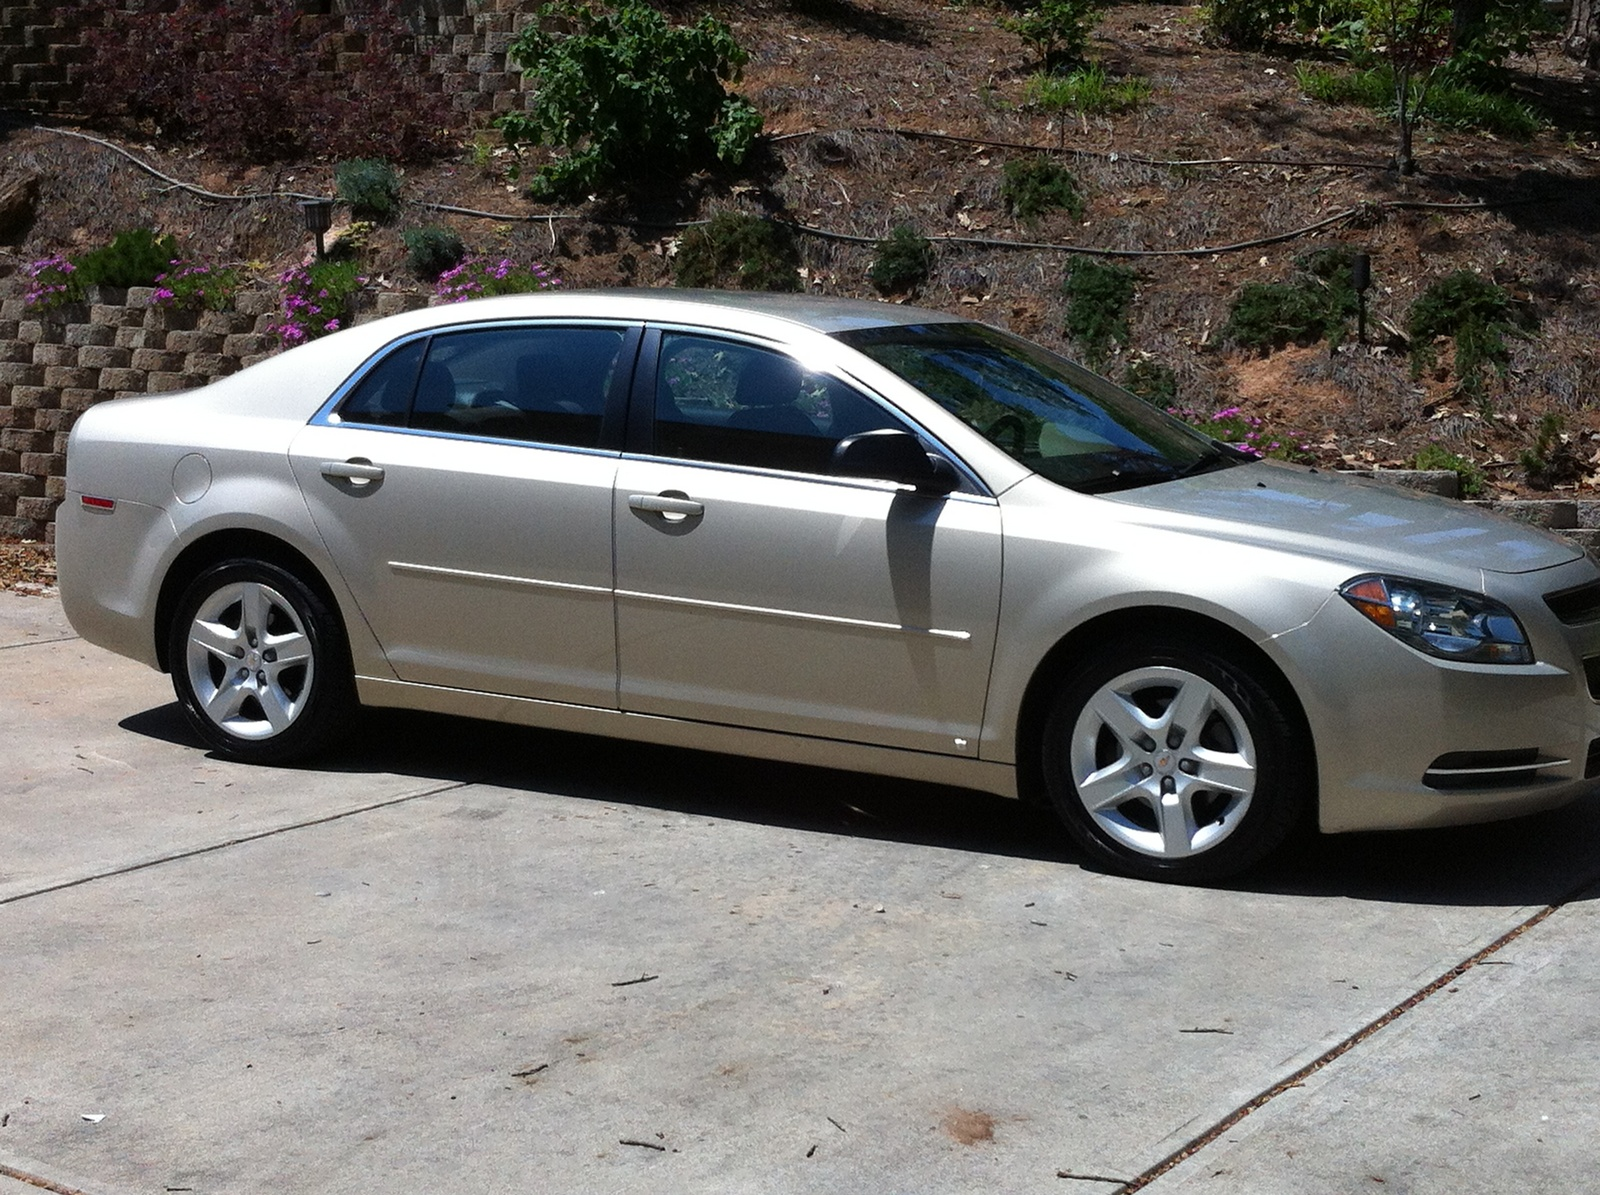 2008 Chevy Malibu Used Picture of 2009 Chevrolet Malibu LS, exterior